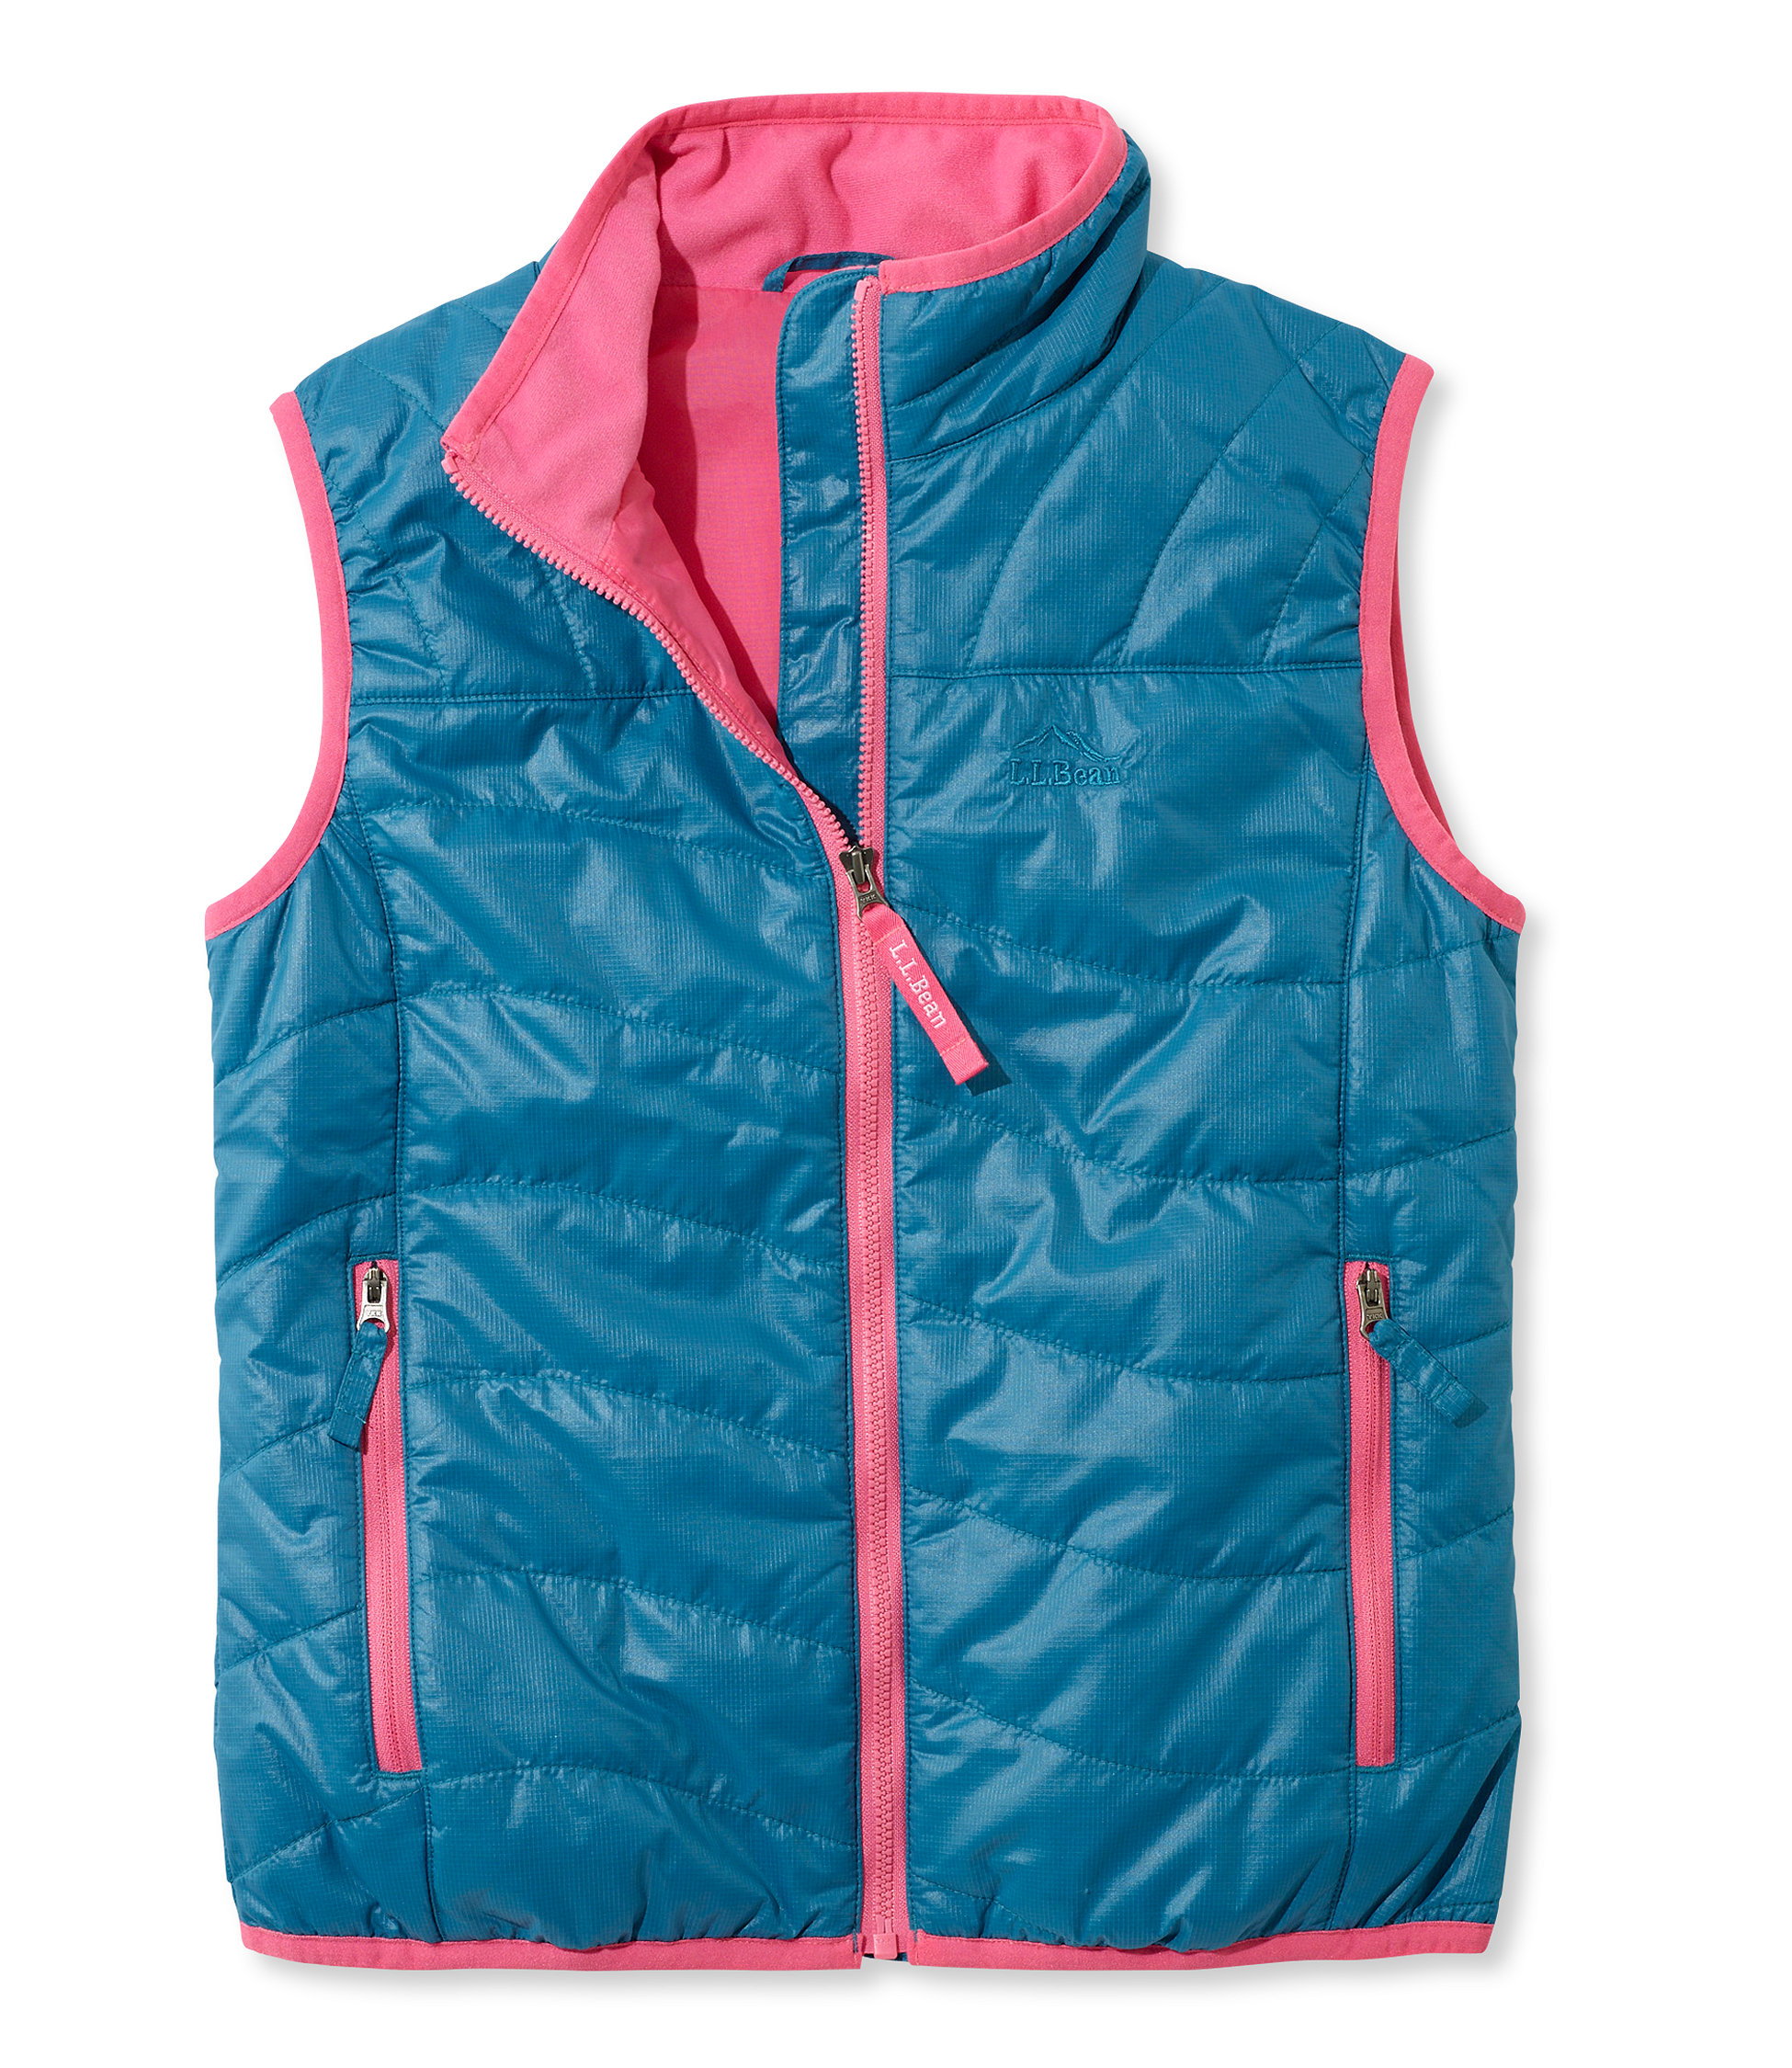 photo: L.L.Bean Girls' Puff-N-Stuff Vest synthetic insulated vest